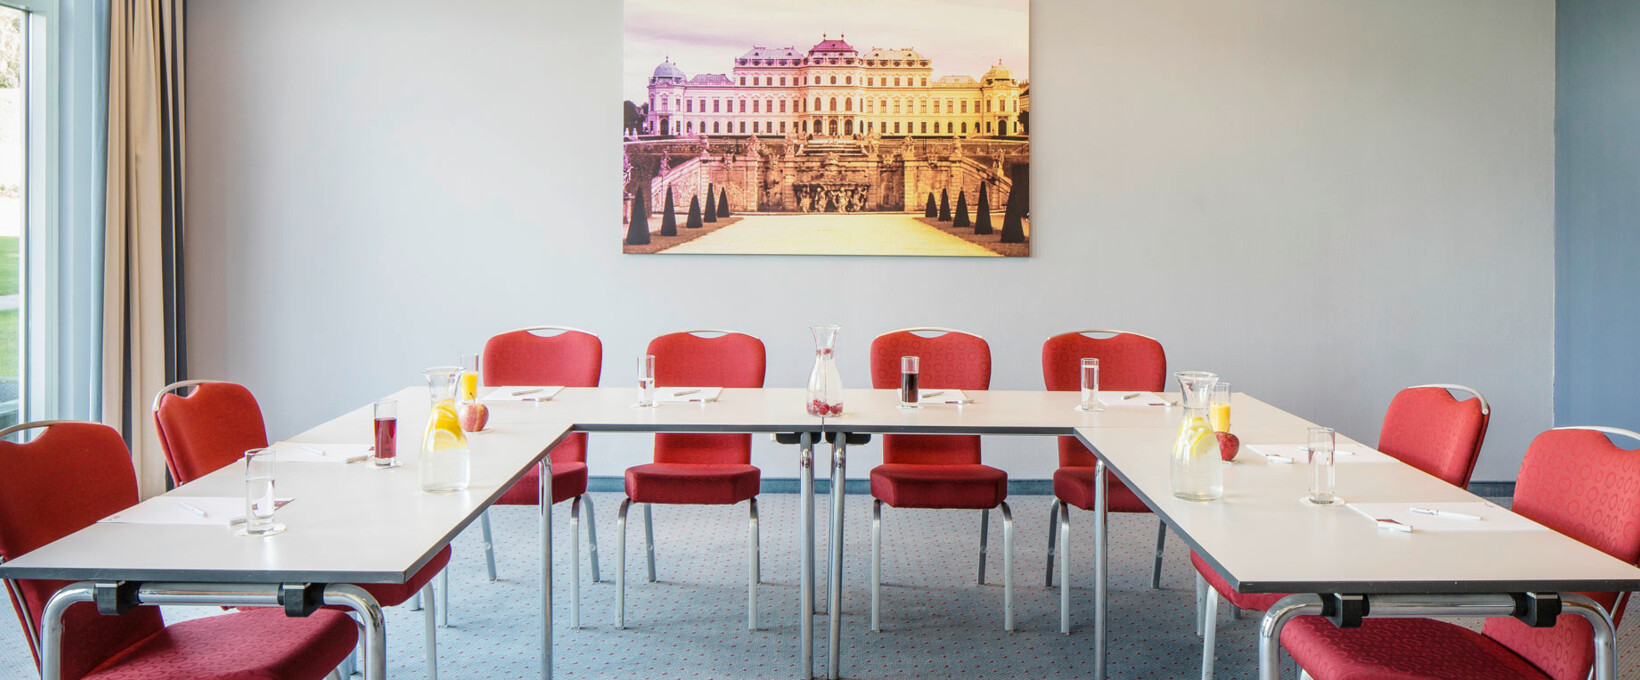 Seminar room with U-shape | Hotel Bosei in Vienna